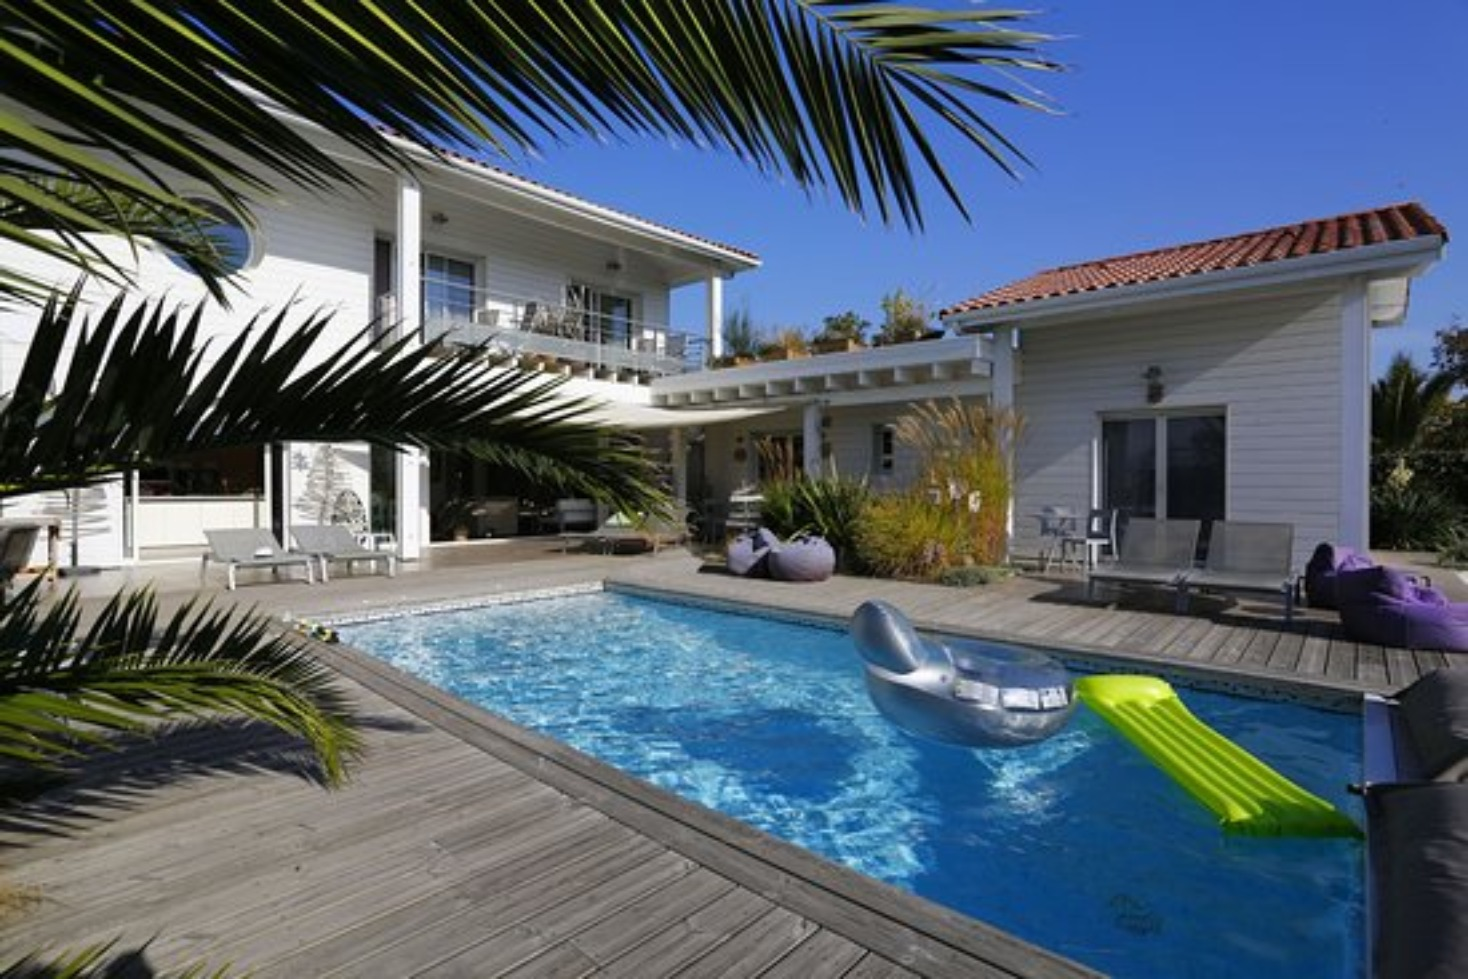 A house with a pool in front of a building at Côte & Dune.